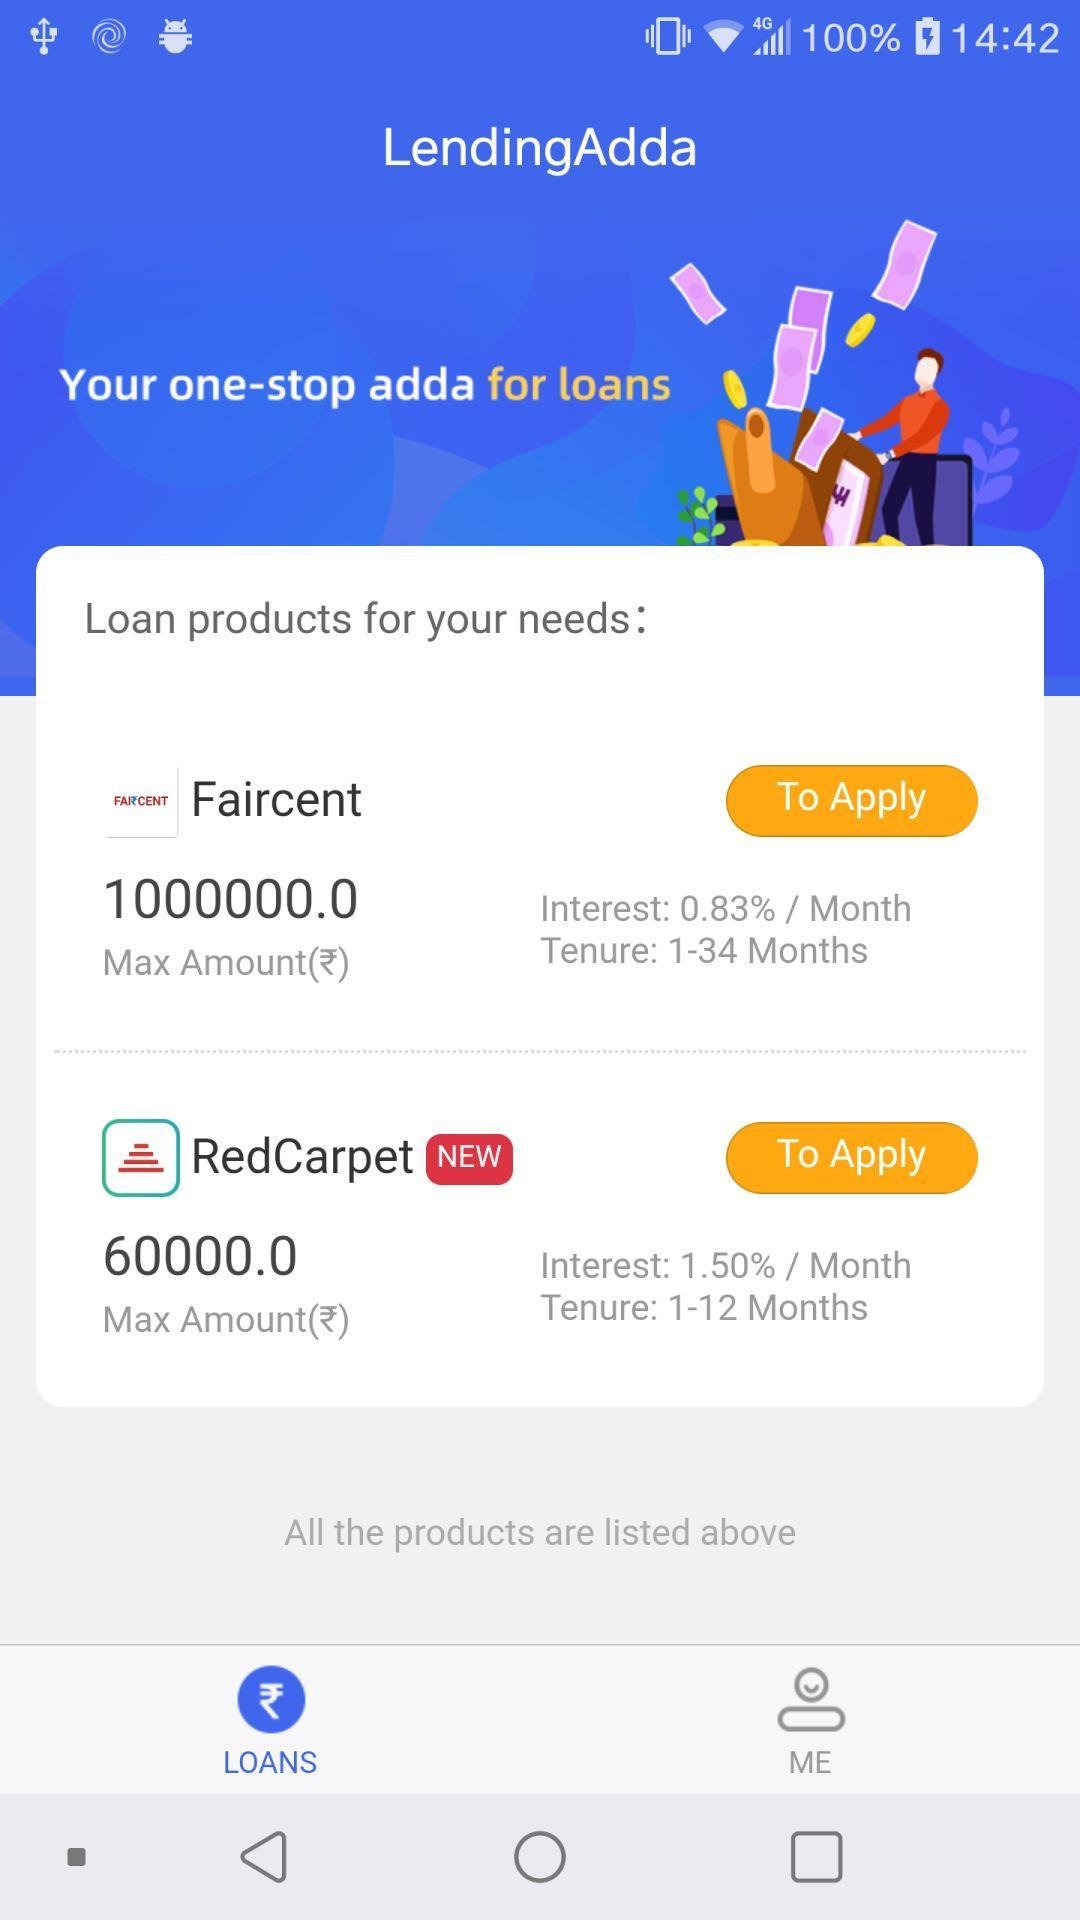 Lending Adda for Android - APK Download